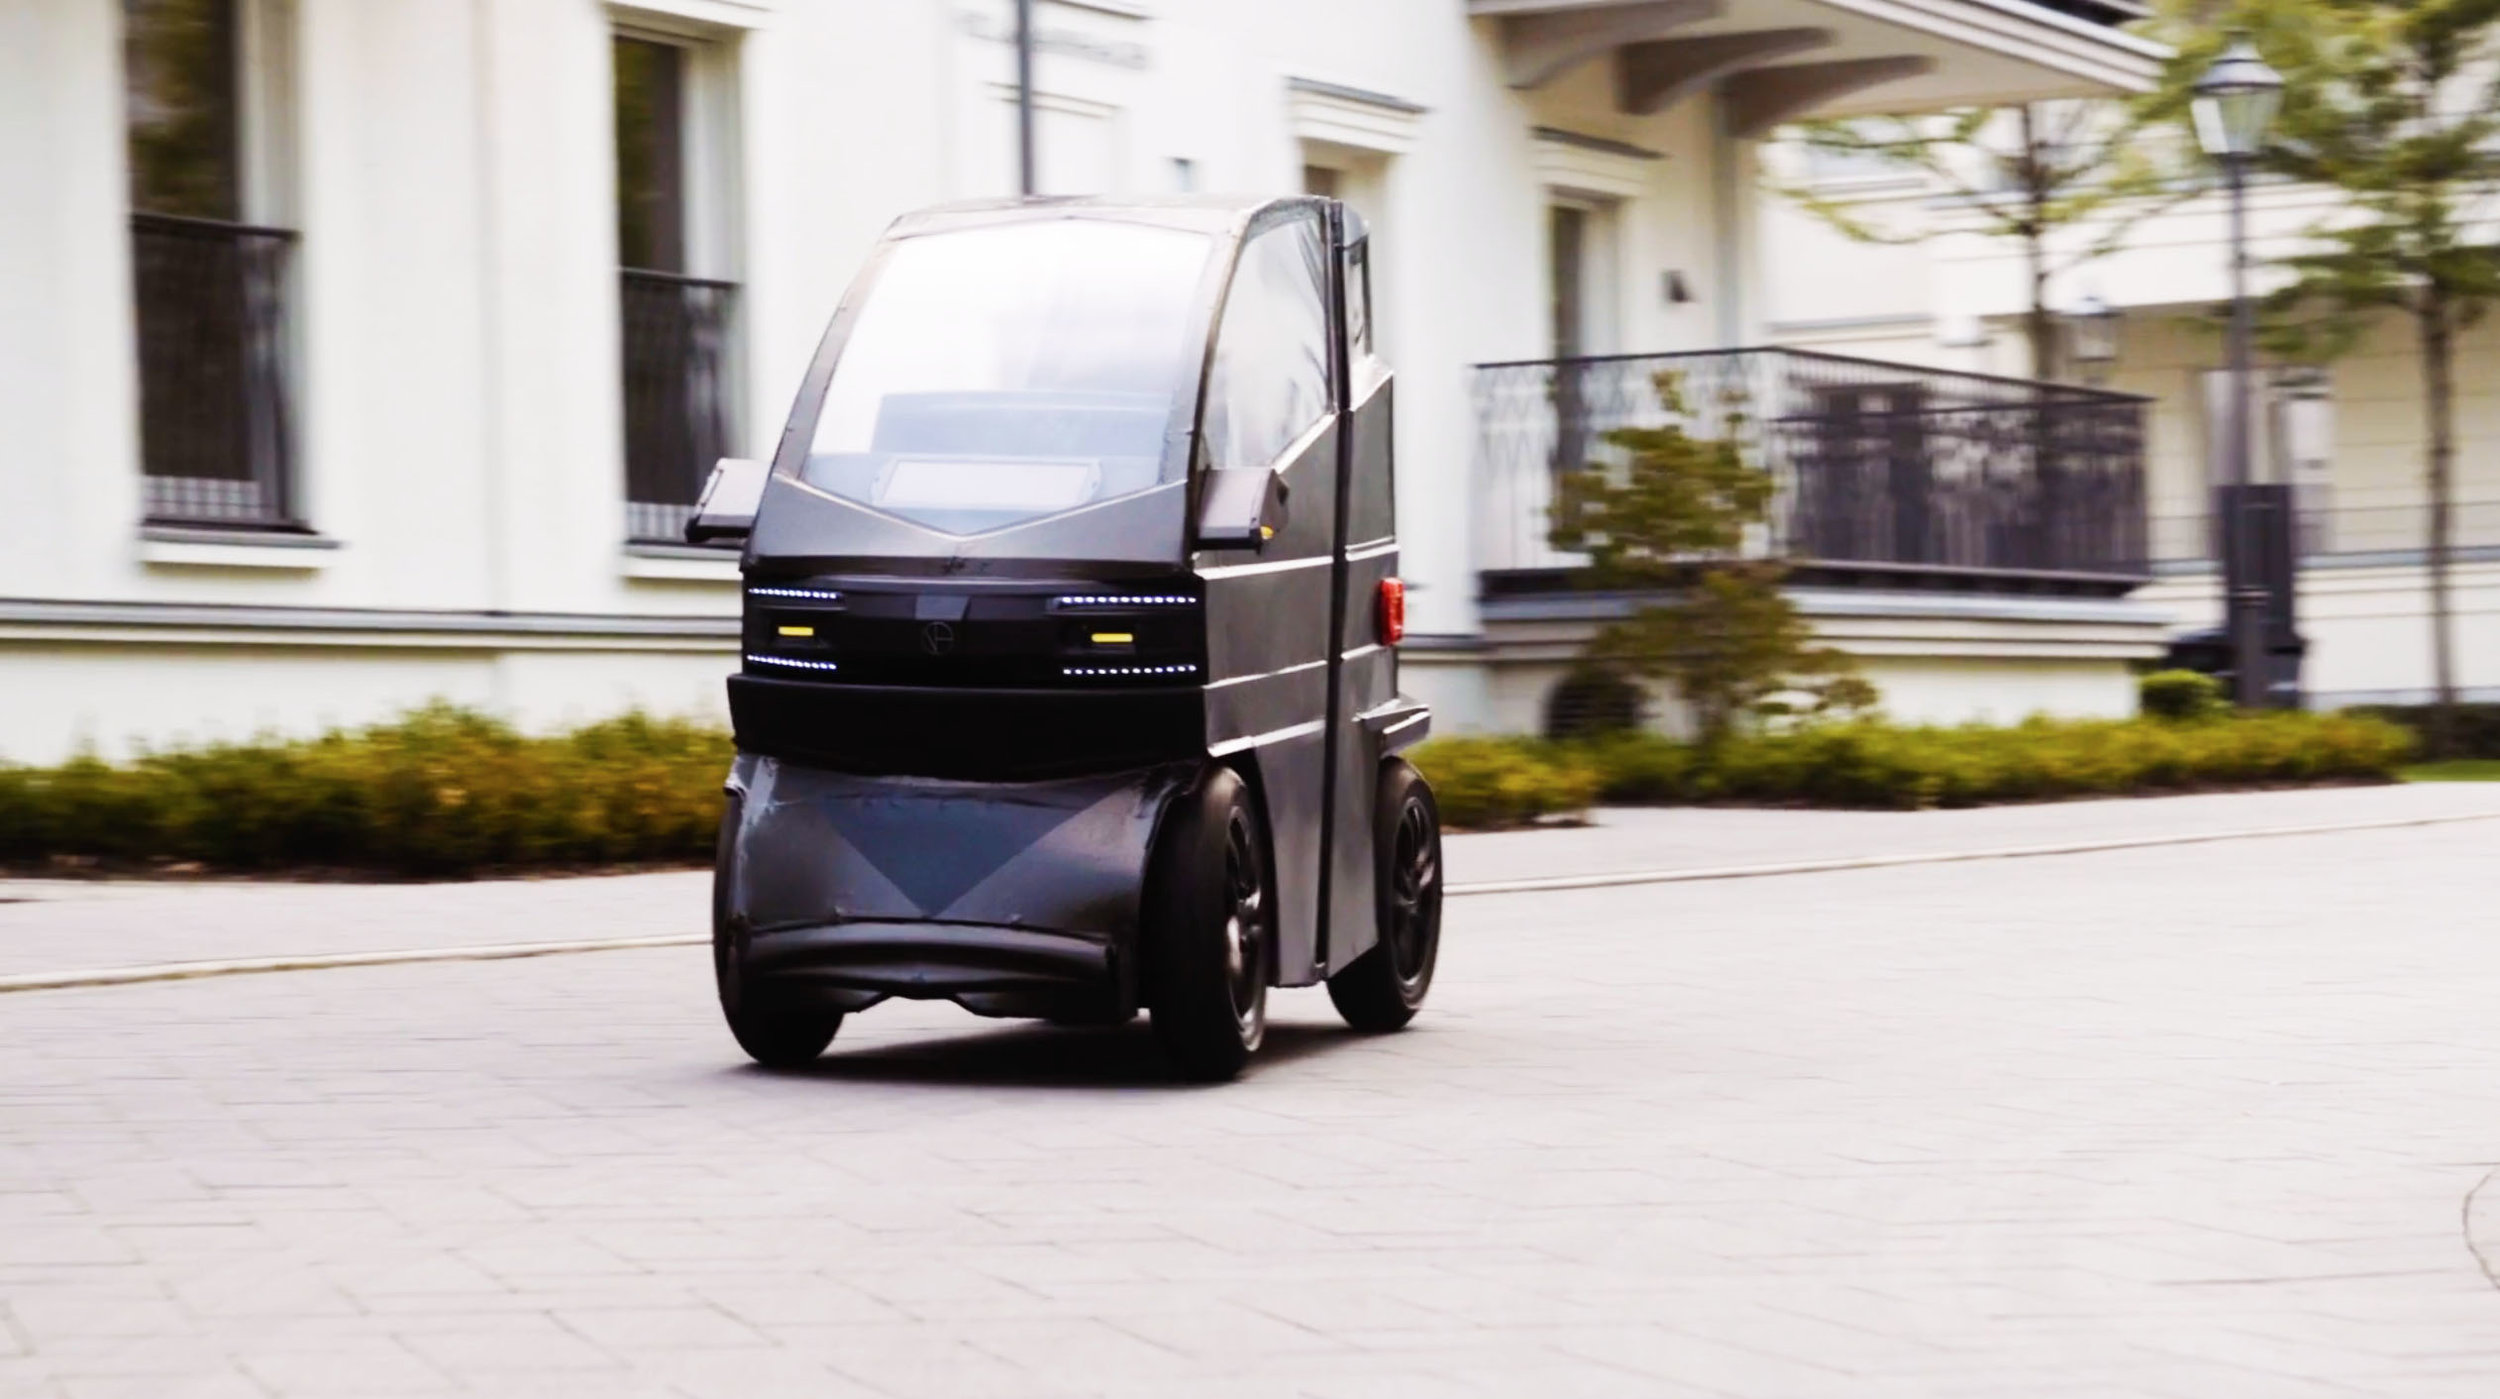 The Future is Here  - - Unbelievable 78 cm width - Carries 1-2 individuals - 6-7 times smaller than a car- Powerful uphill and aerodynamic efficiency.